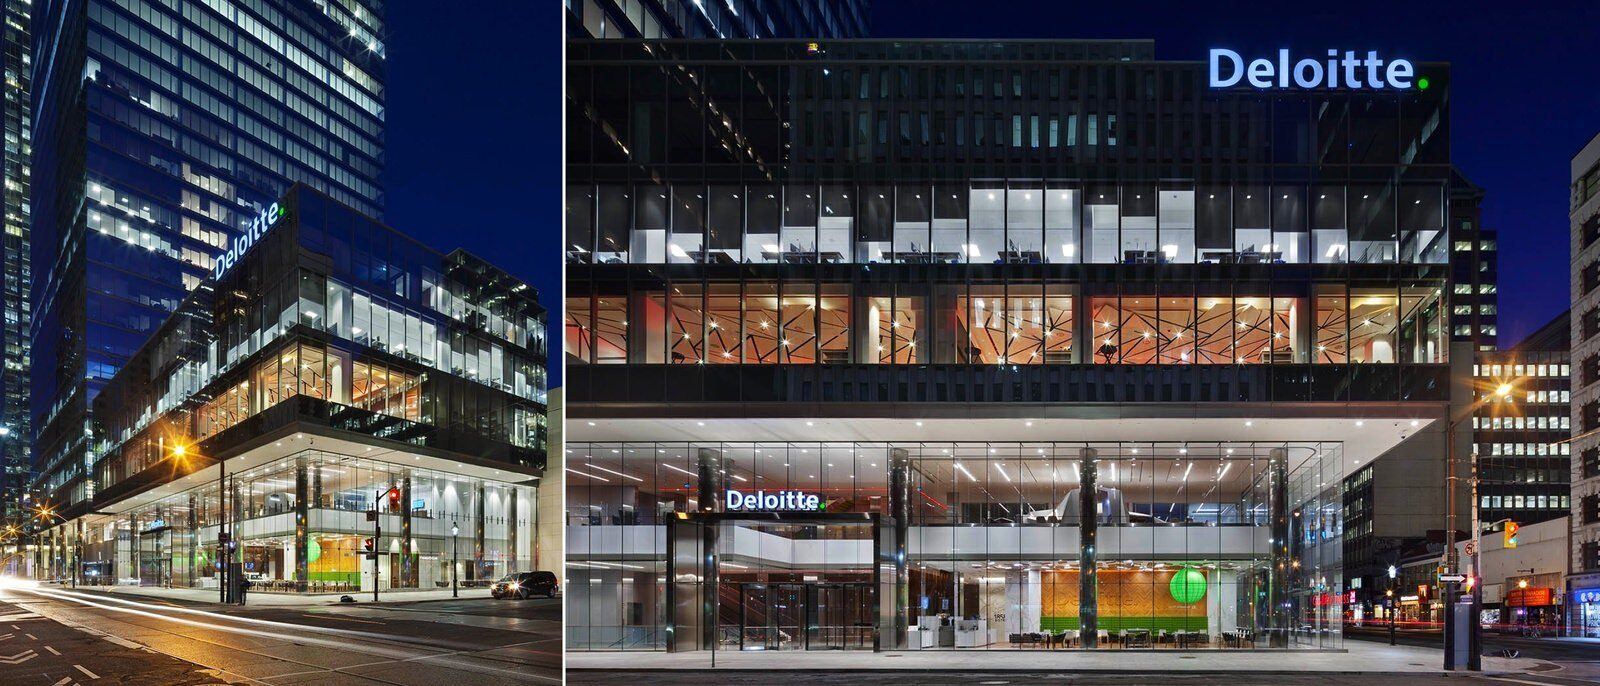 """Two views of the building outside at night. The building says """"Deloitte."""""""